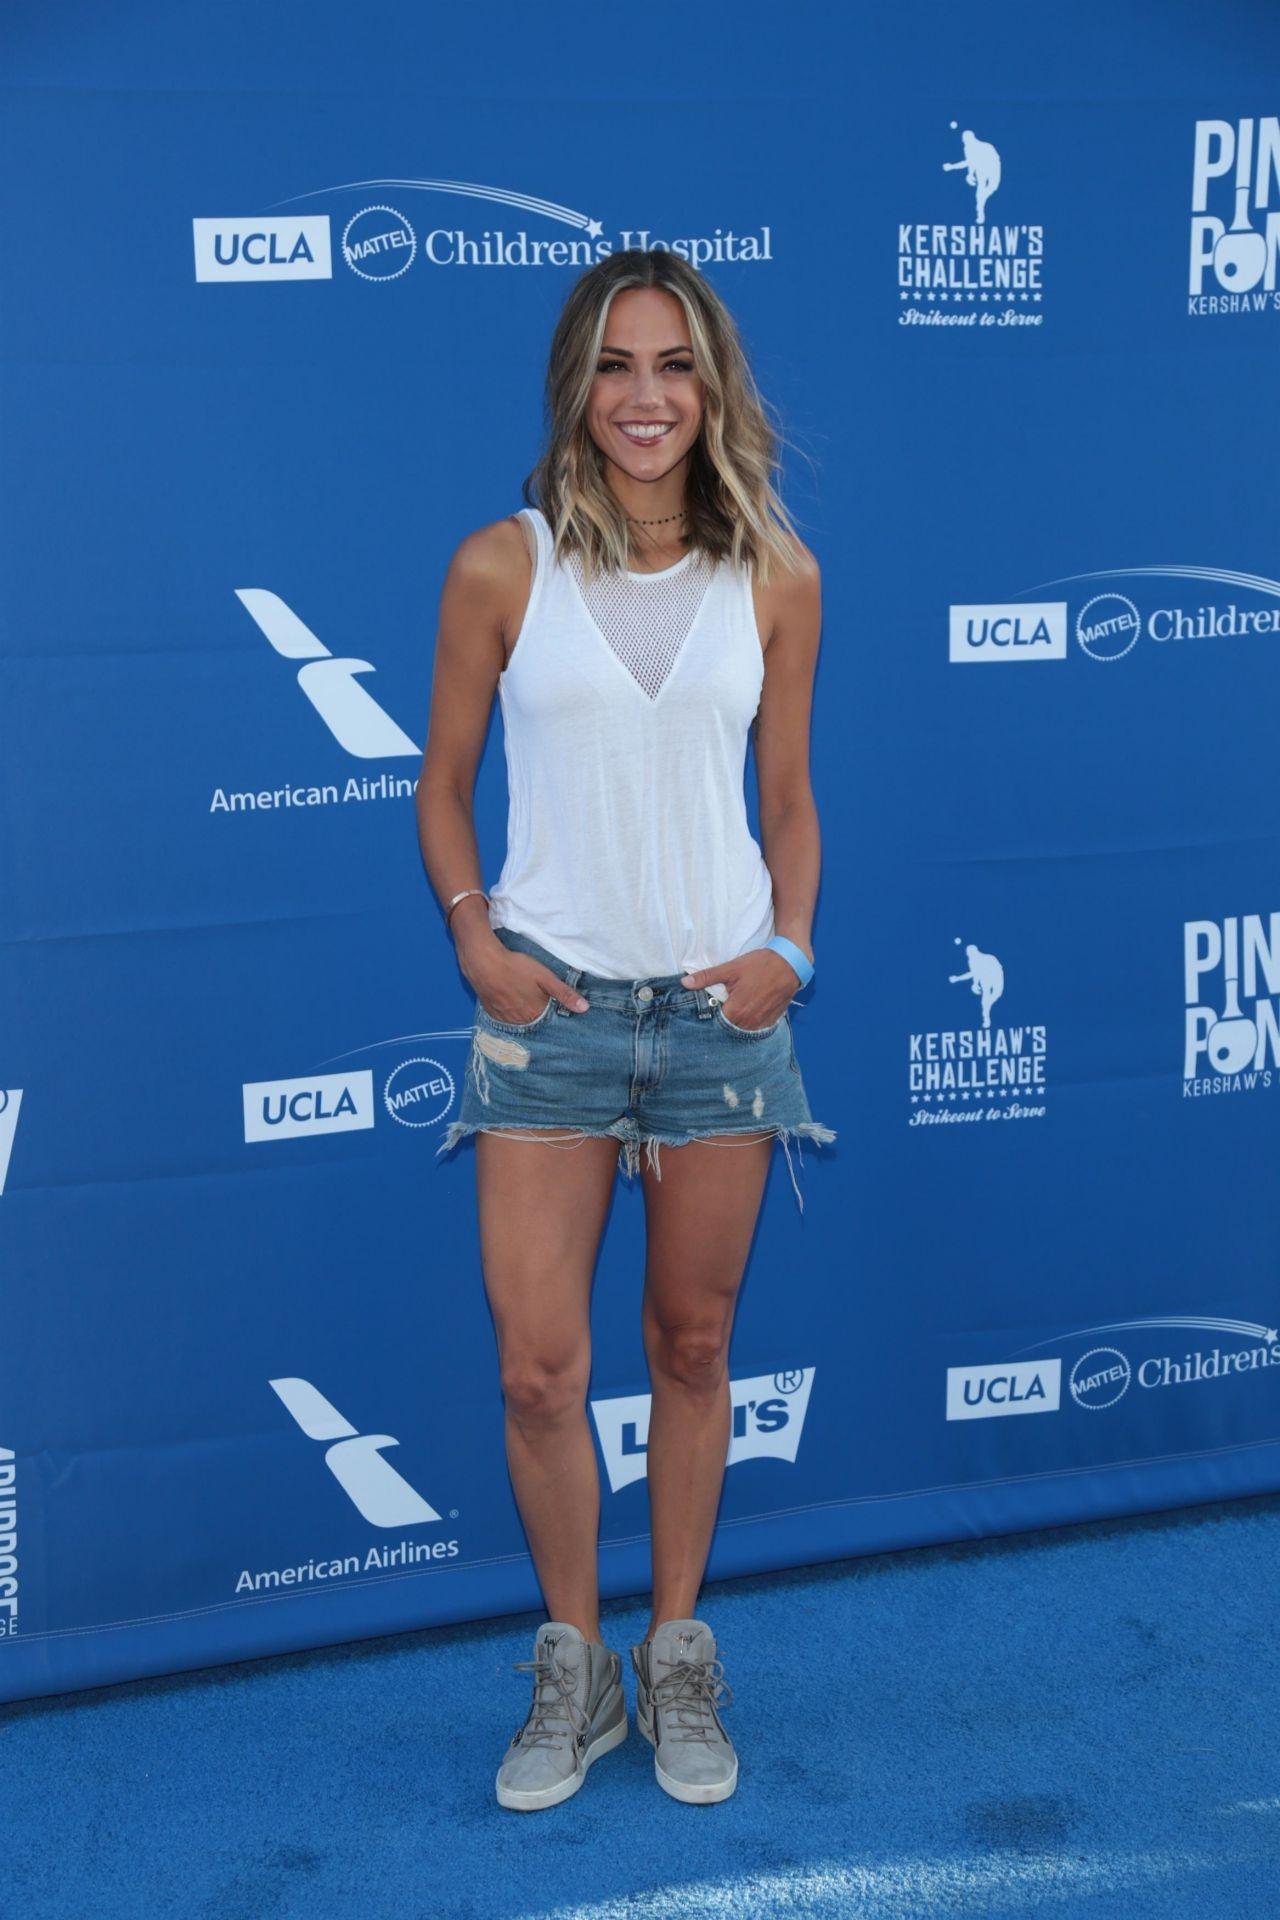 Jana Kramer Ping Pong 4 Purpose At Dodger Stadium In Los